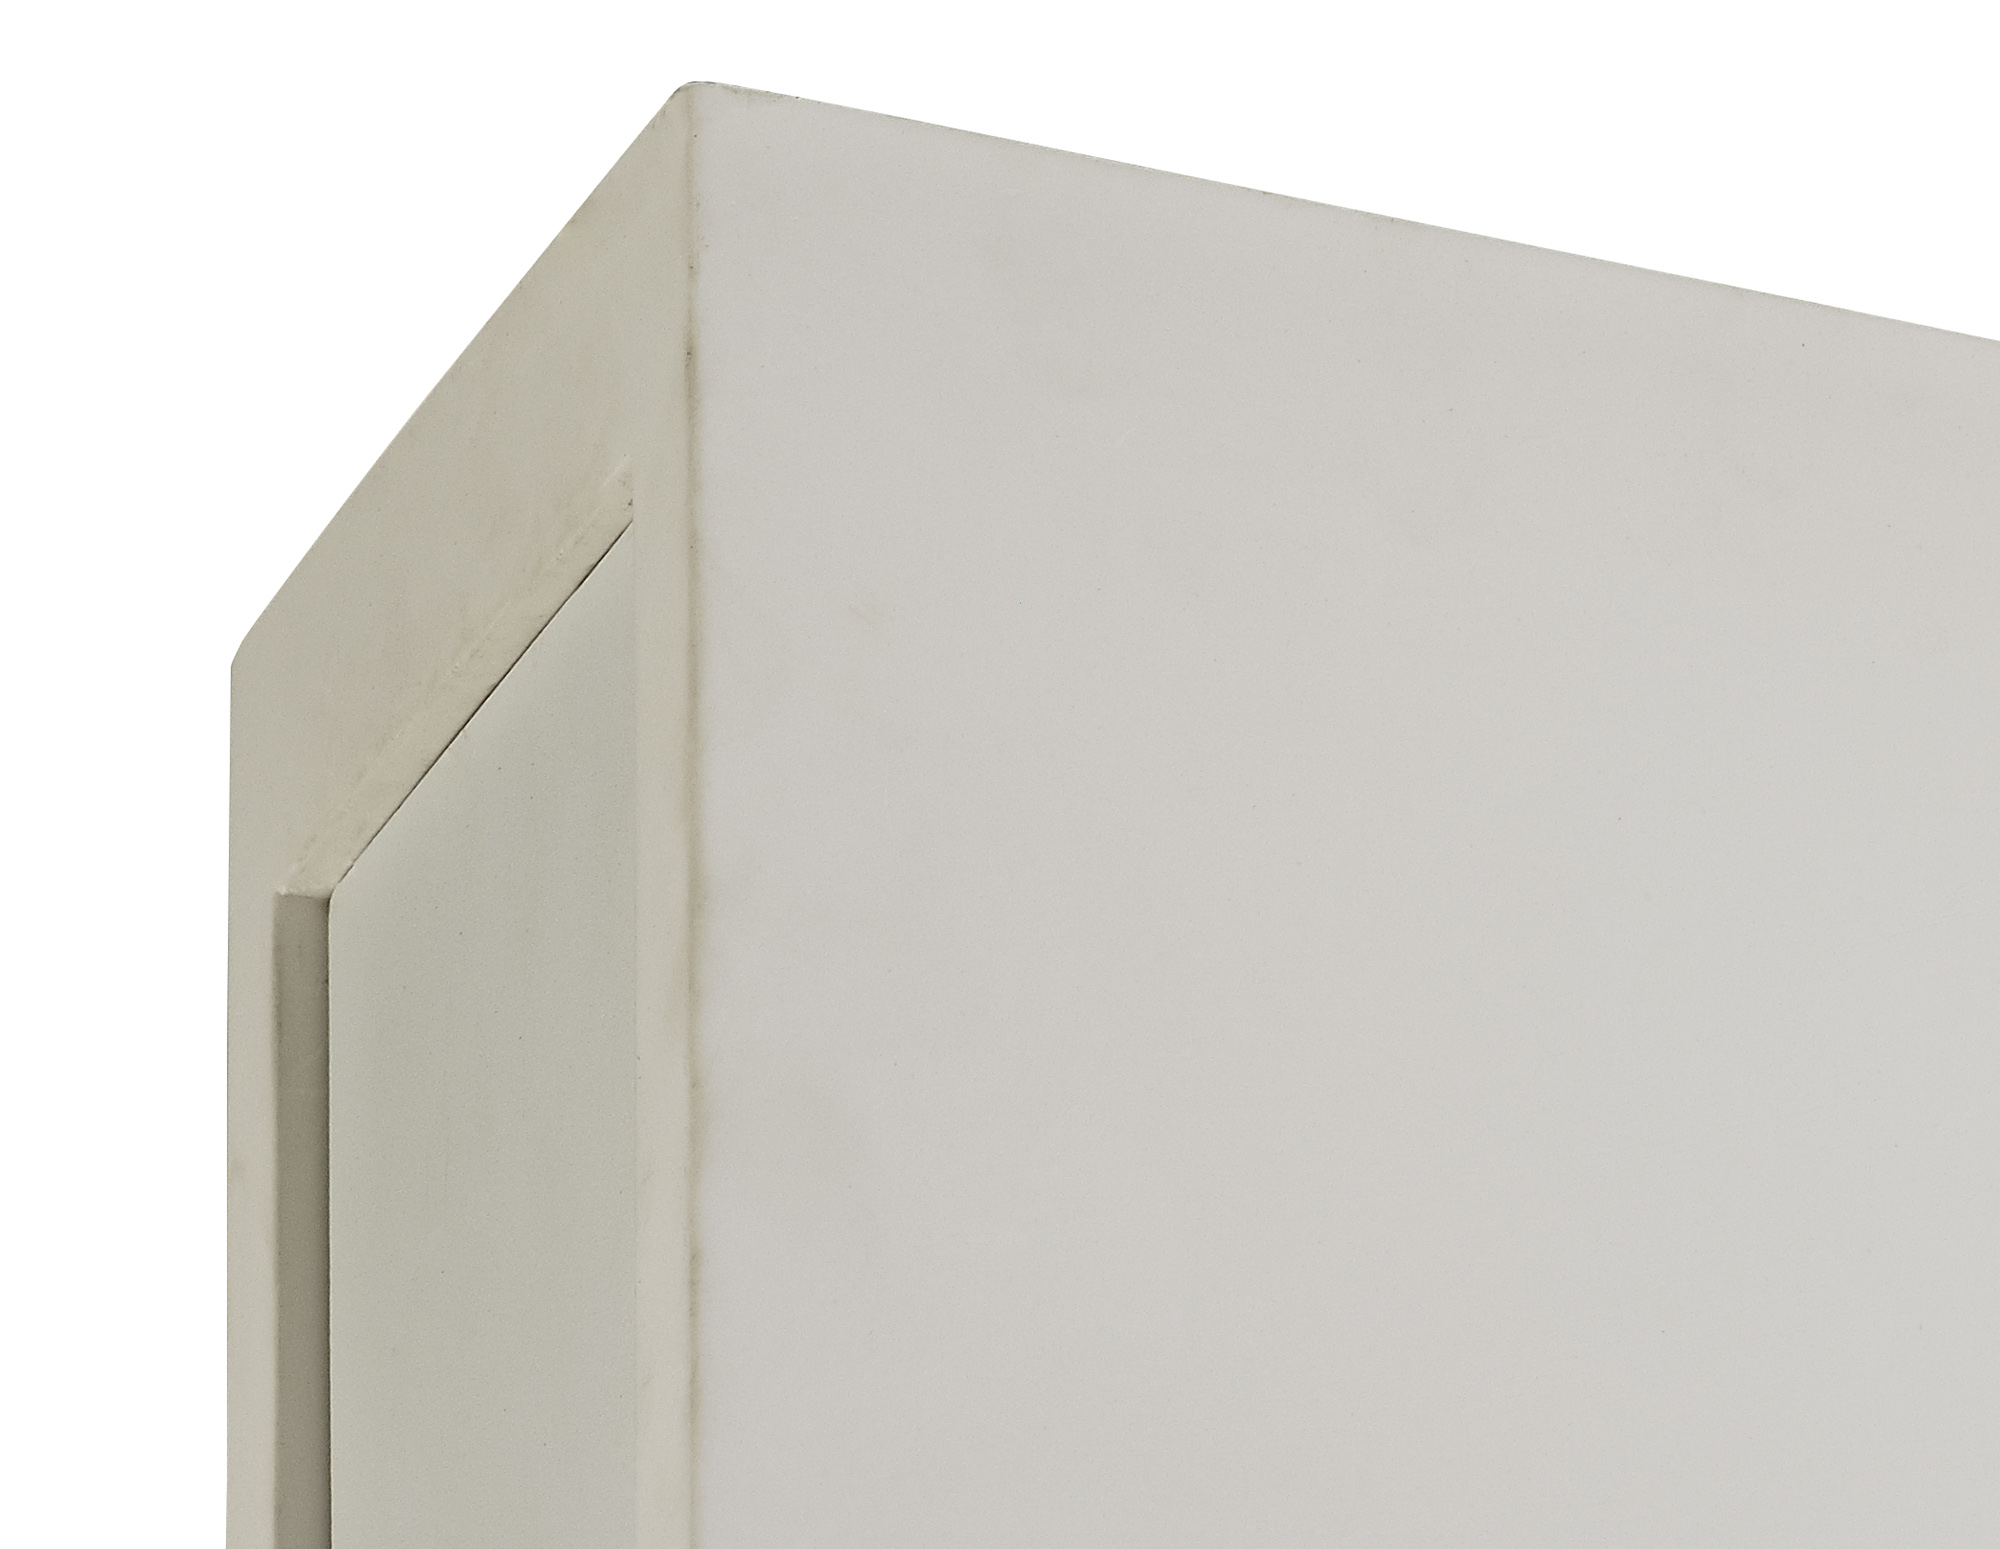 2 Light Rectangular Ceiling GU10, White Paintable Gypsum